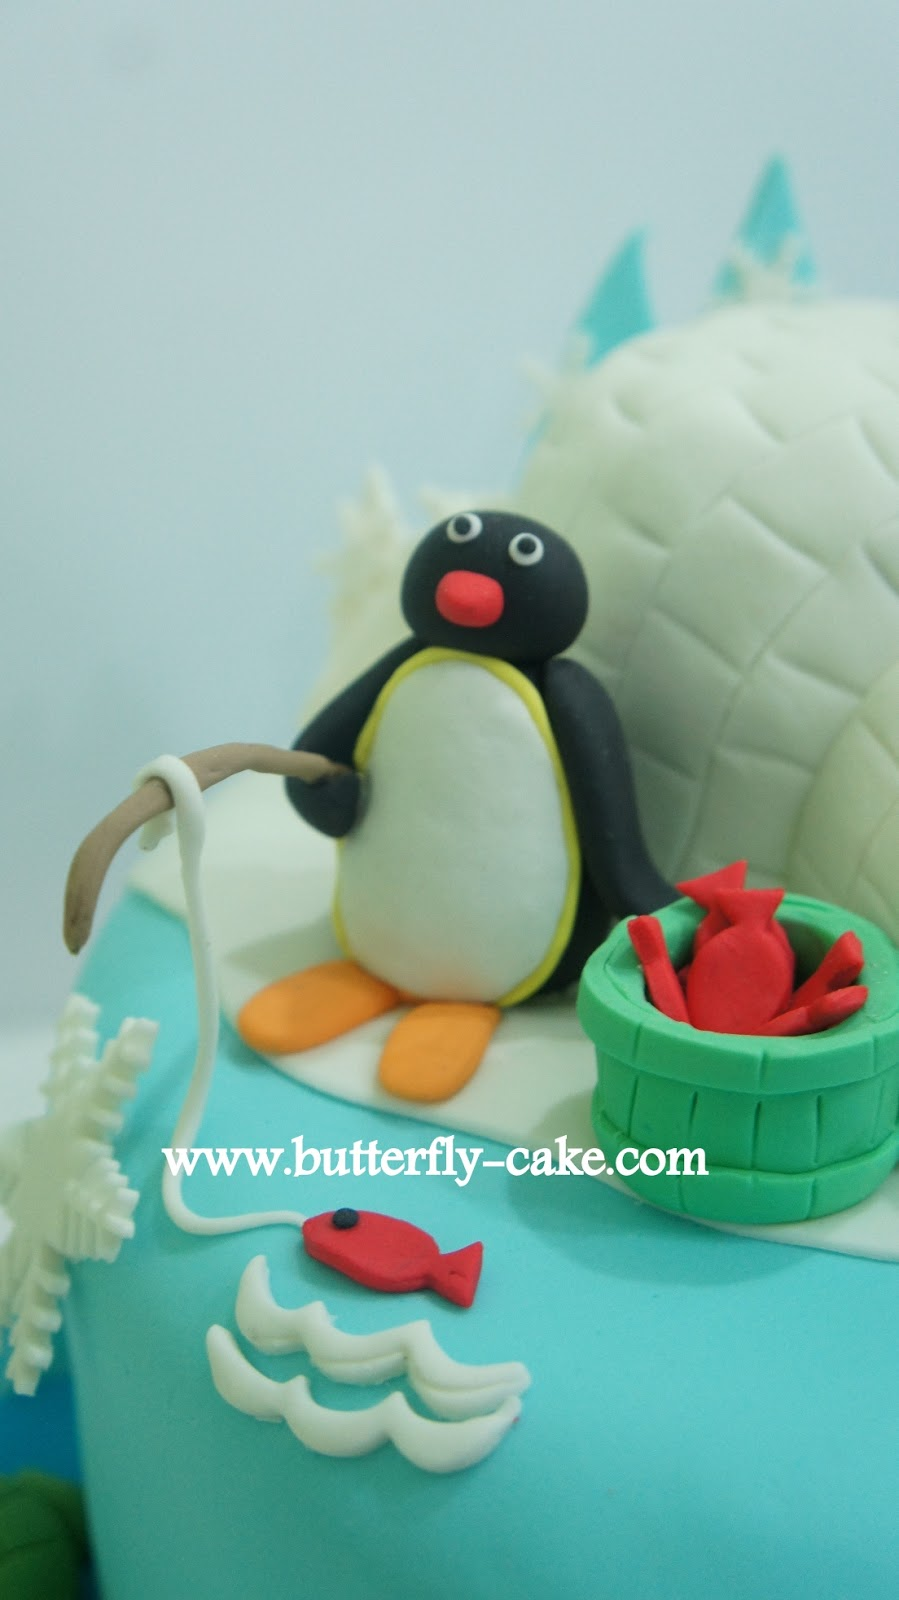 Butterfly Cake Pingu Cake For Kayla